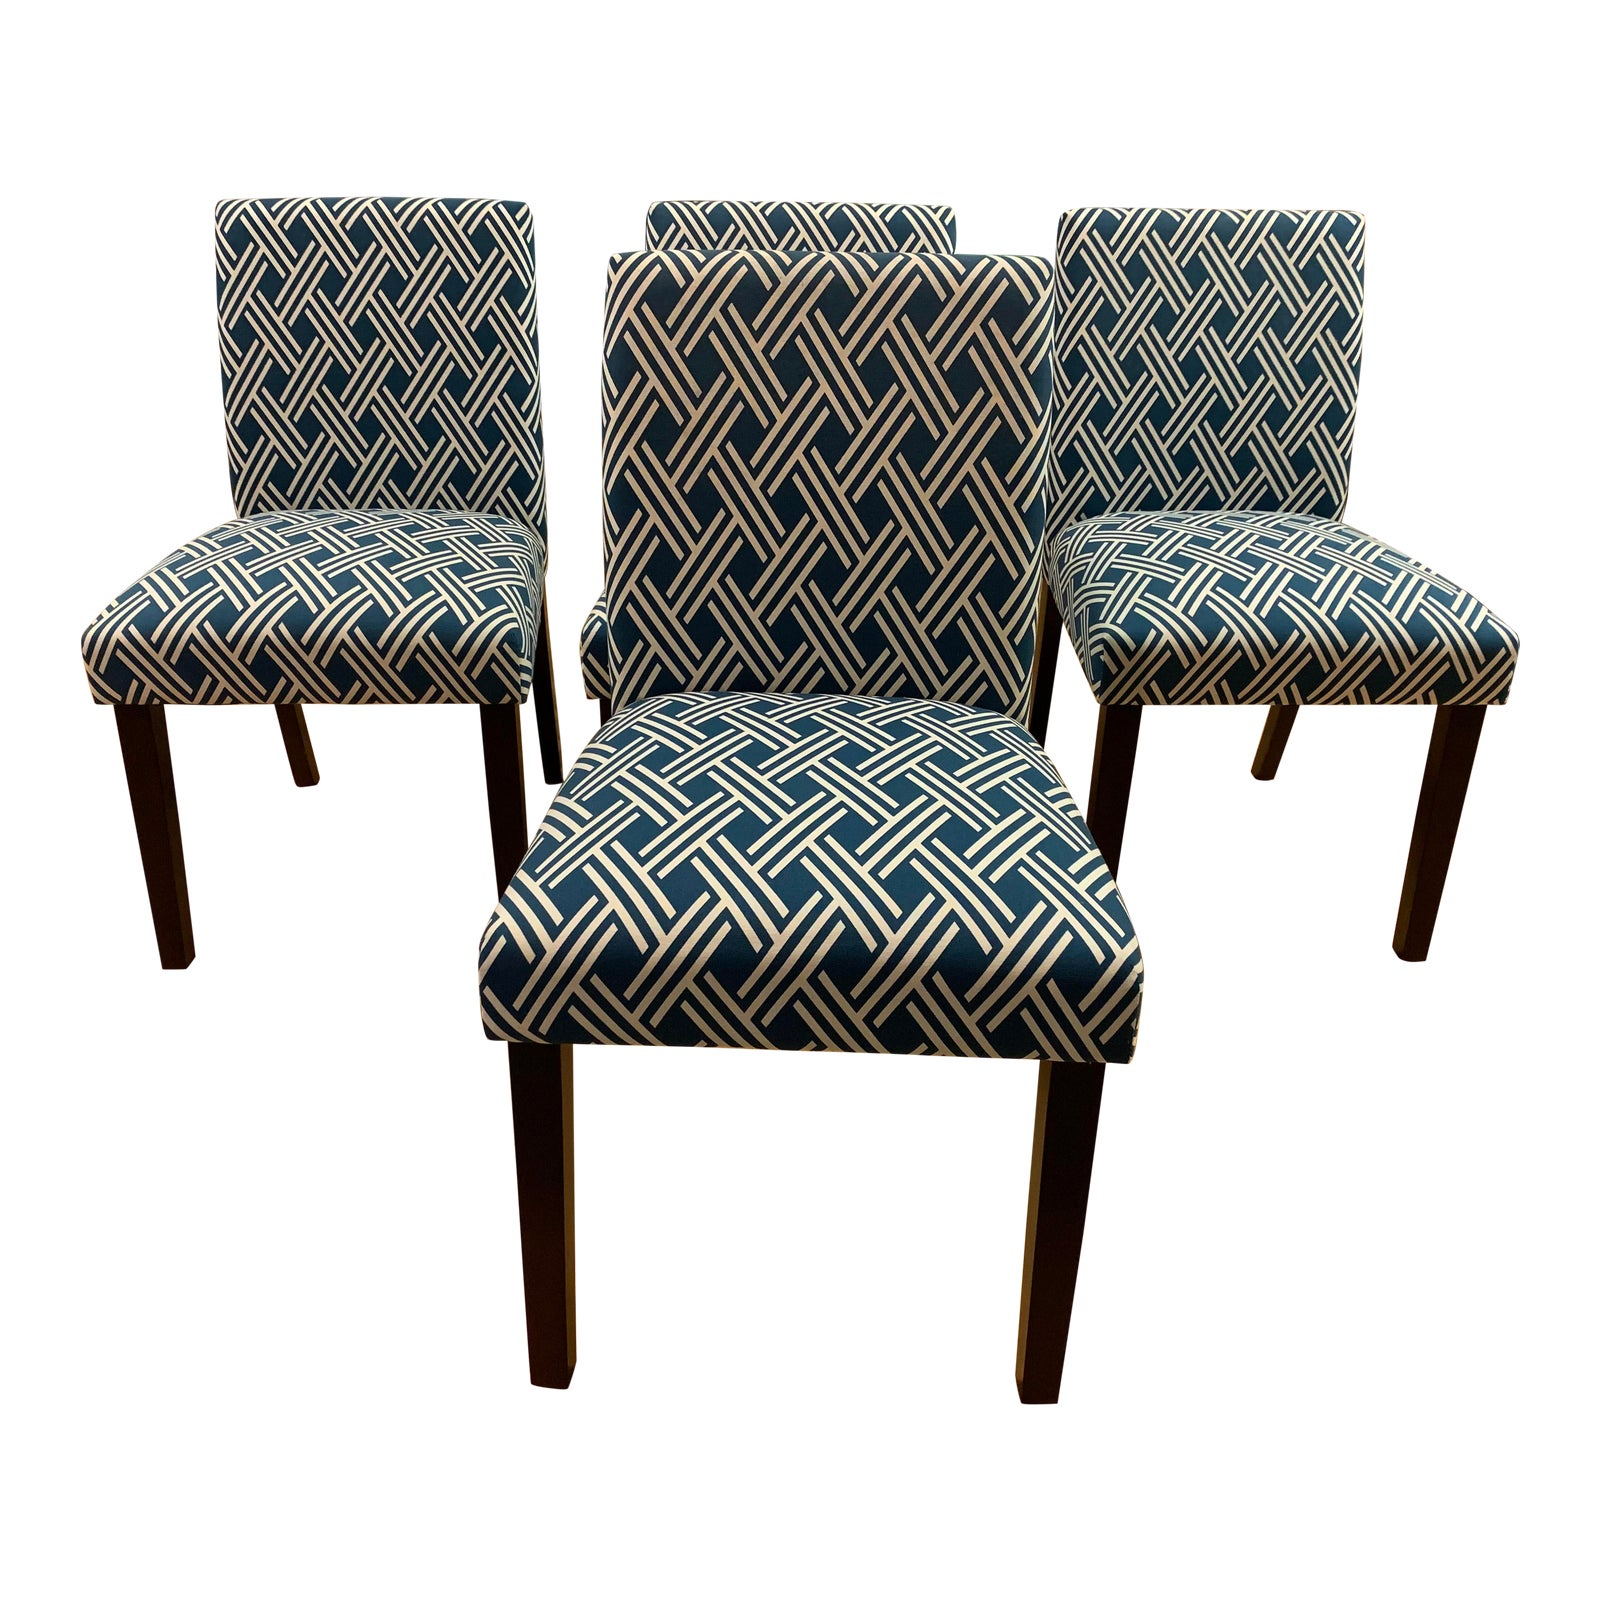 Wondrous Parsons Style Blue White Dining Chairs Set Of Four Unemploymentrelief Wooden Chair Designs For Living Room Unemploymentrelieforg